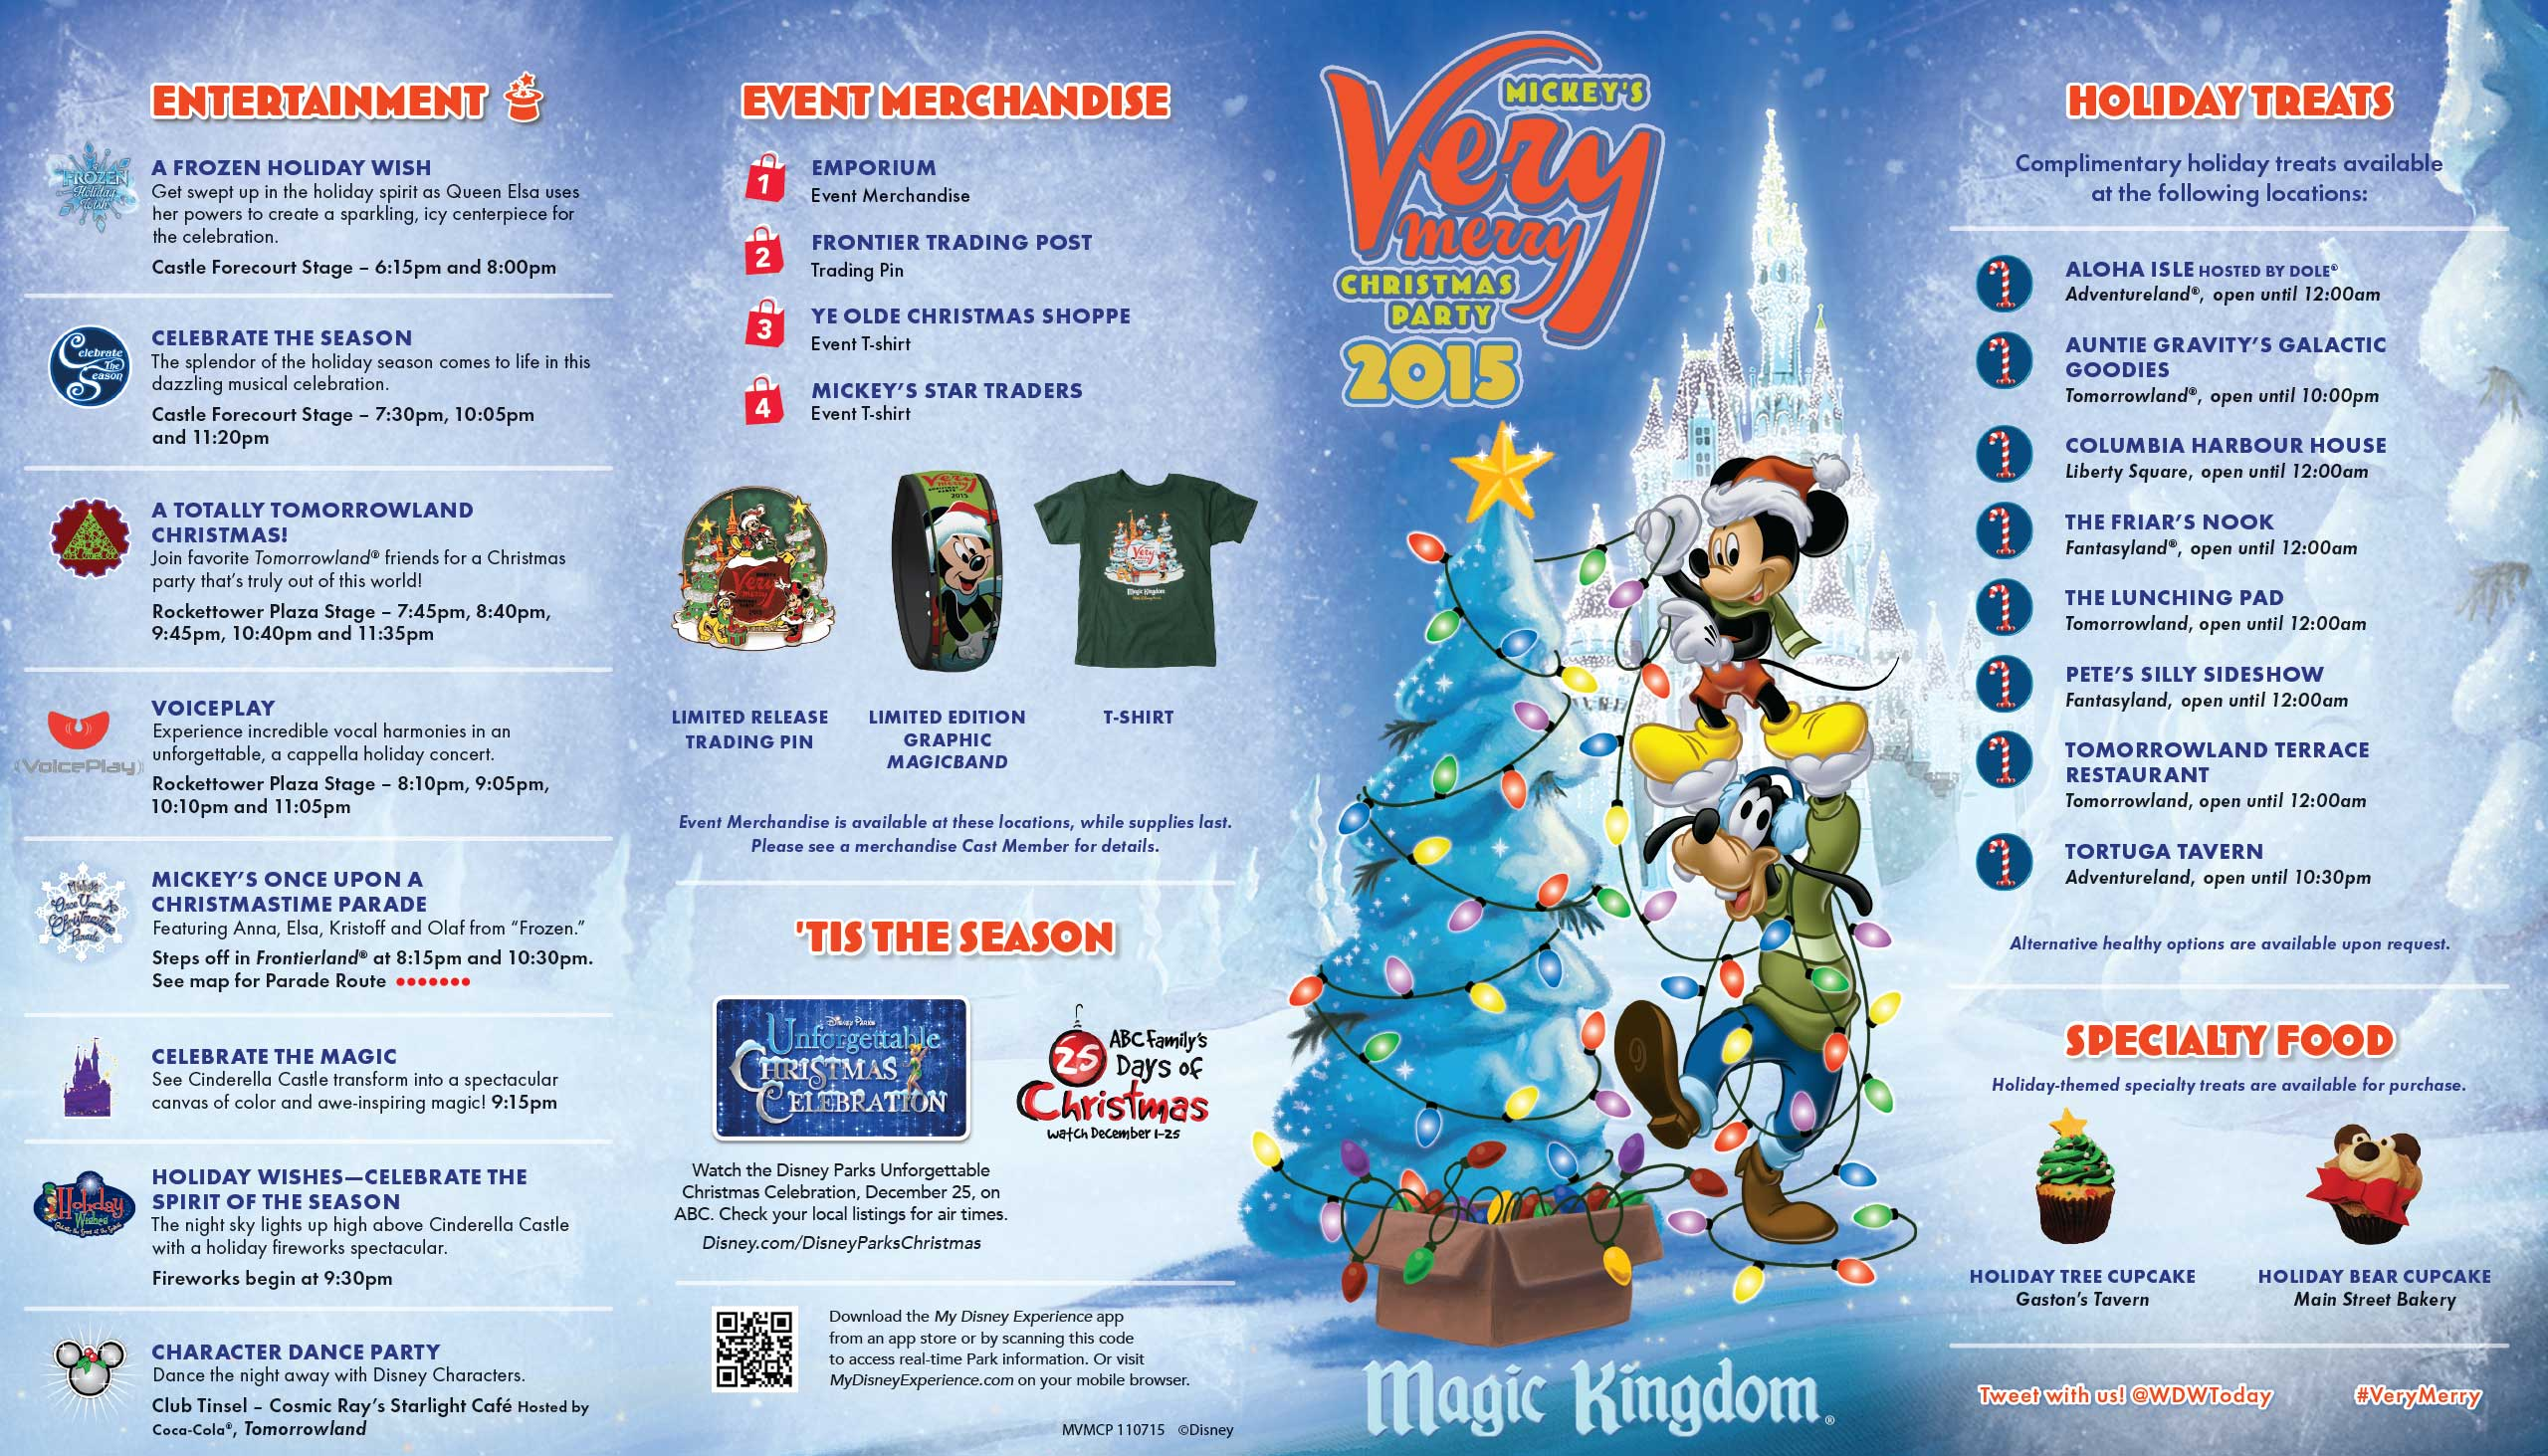 Mickeys Very Merry Christmas Party.Mickey S Very Merry Christmas Party 2015 Guide Map Photo 1